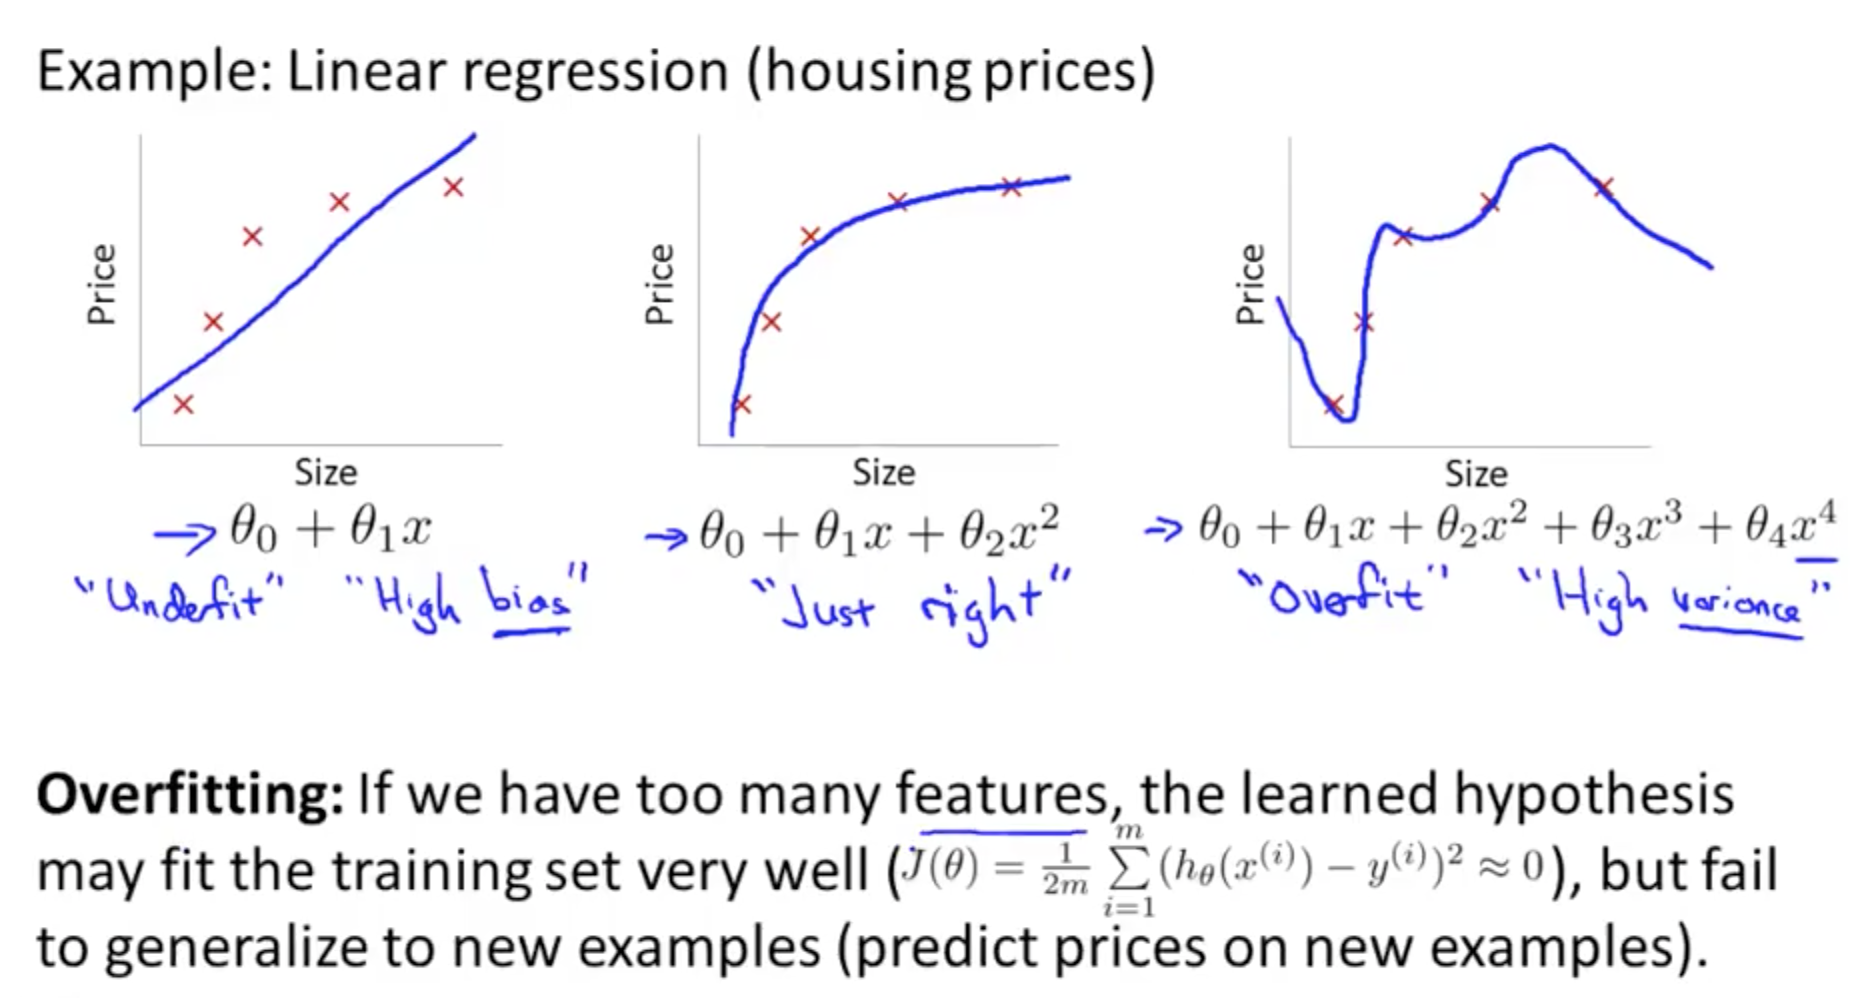 Photo Credit: Andrew Ng's Machine Learning course on Coursera.